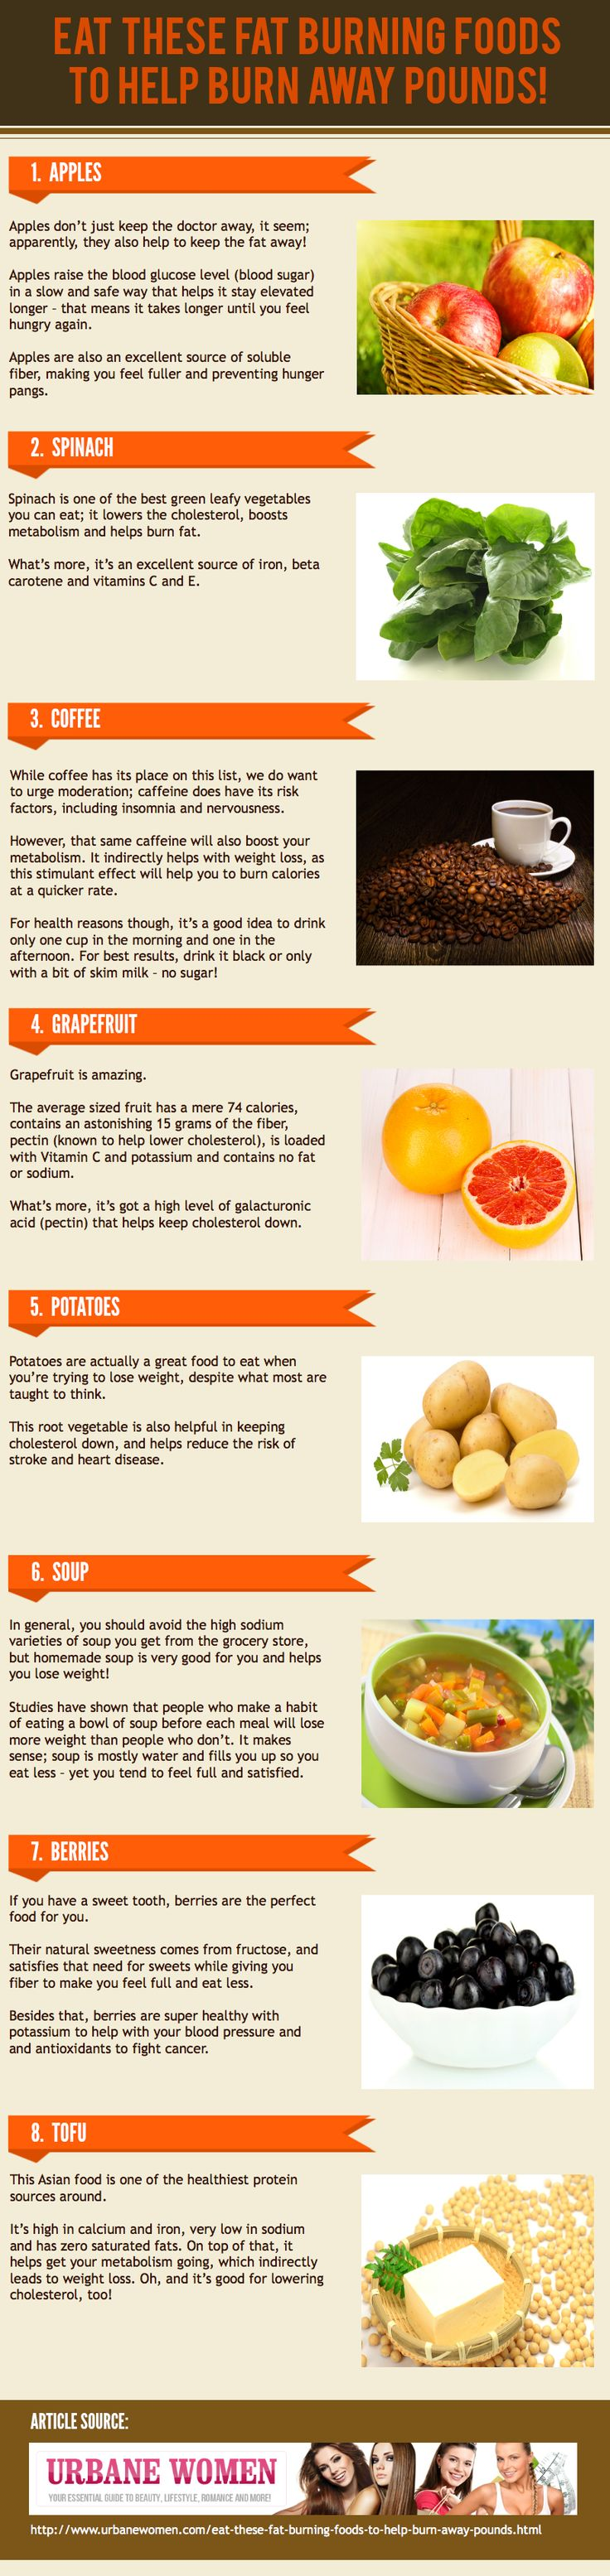 Eat these Fat Burning Foods to Help Burn Away Pounds